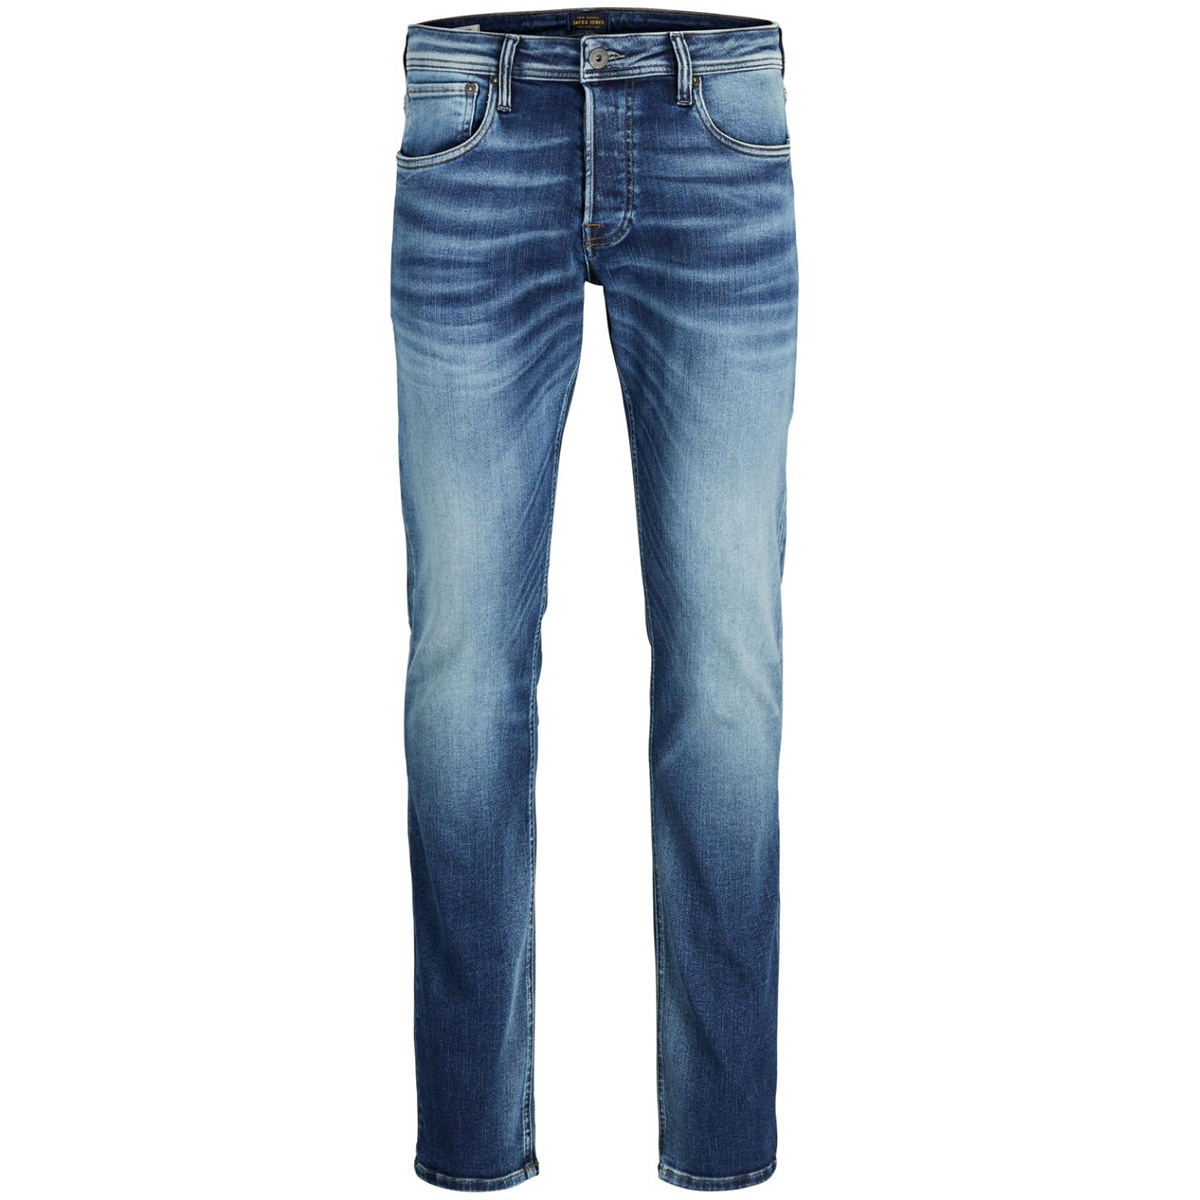 jjiglenn jjoriginal jos 107 50sps 12131784 jack & jones jeans blue denim